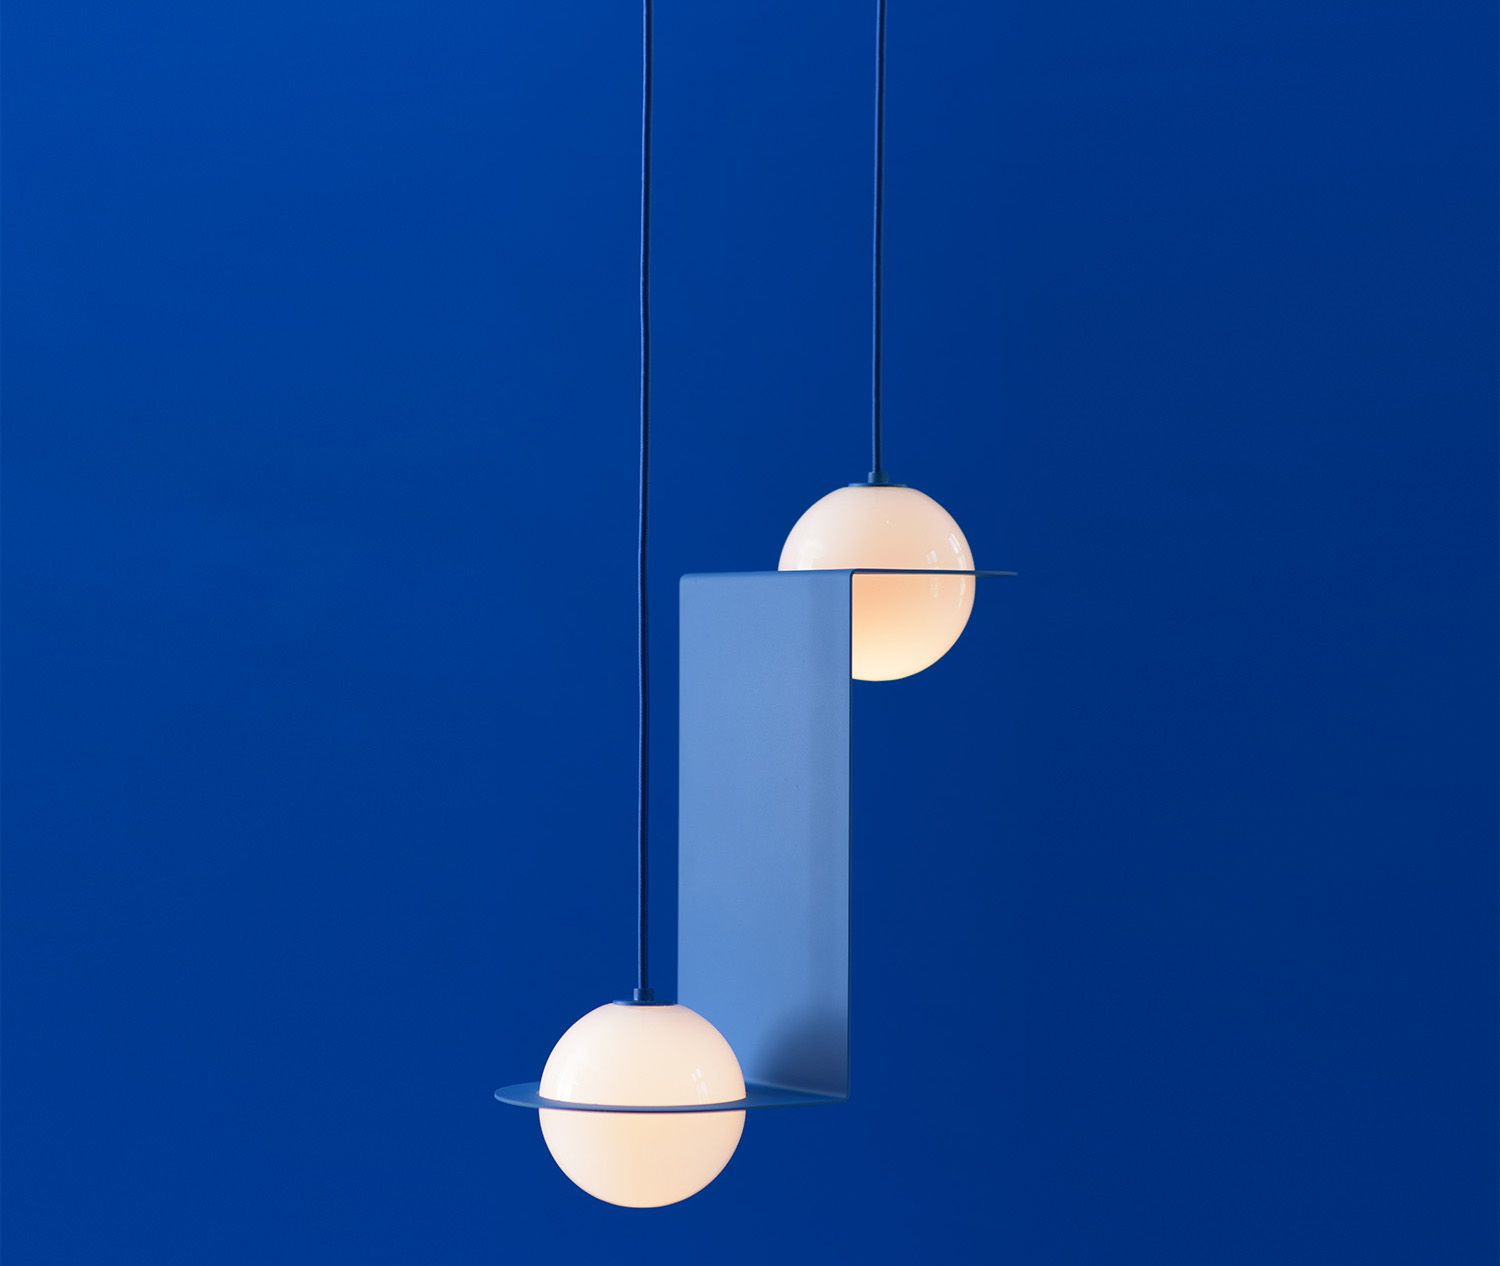 The Canadian Lighting Company Lambert Fils Updated Their Recent Lau Collection With New Colors Like Heart Melting Green At Top Of This Post